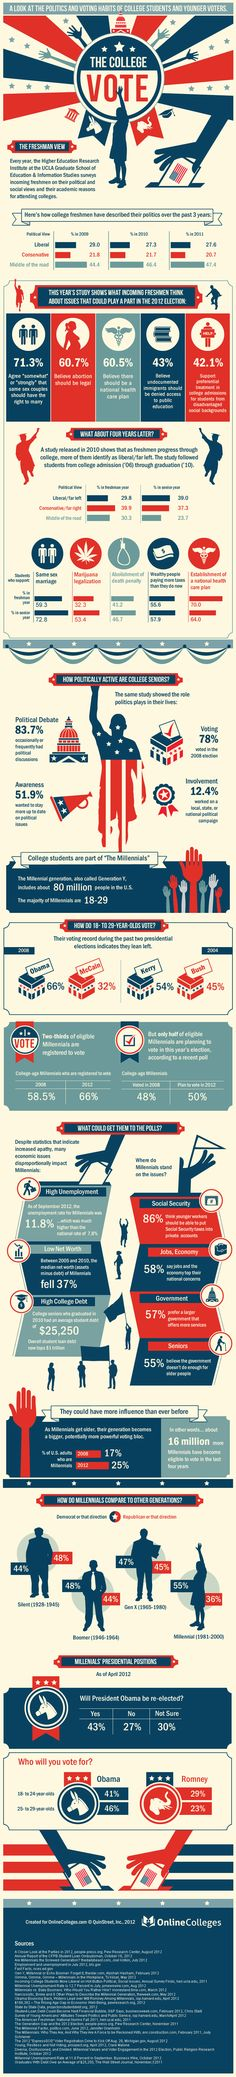 Unique Infographic Design, The College Vote #Infographic #Design (http://www.pinterest.com/aldenchong/)